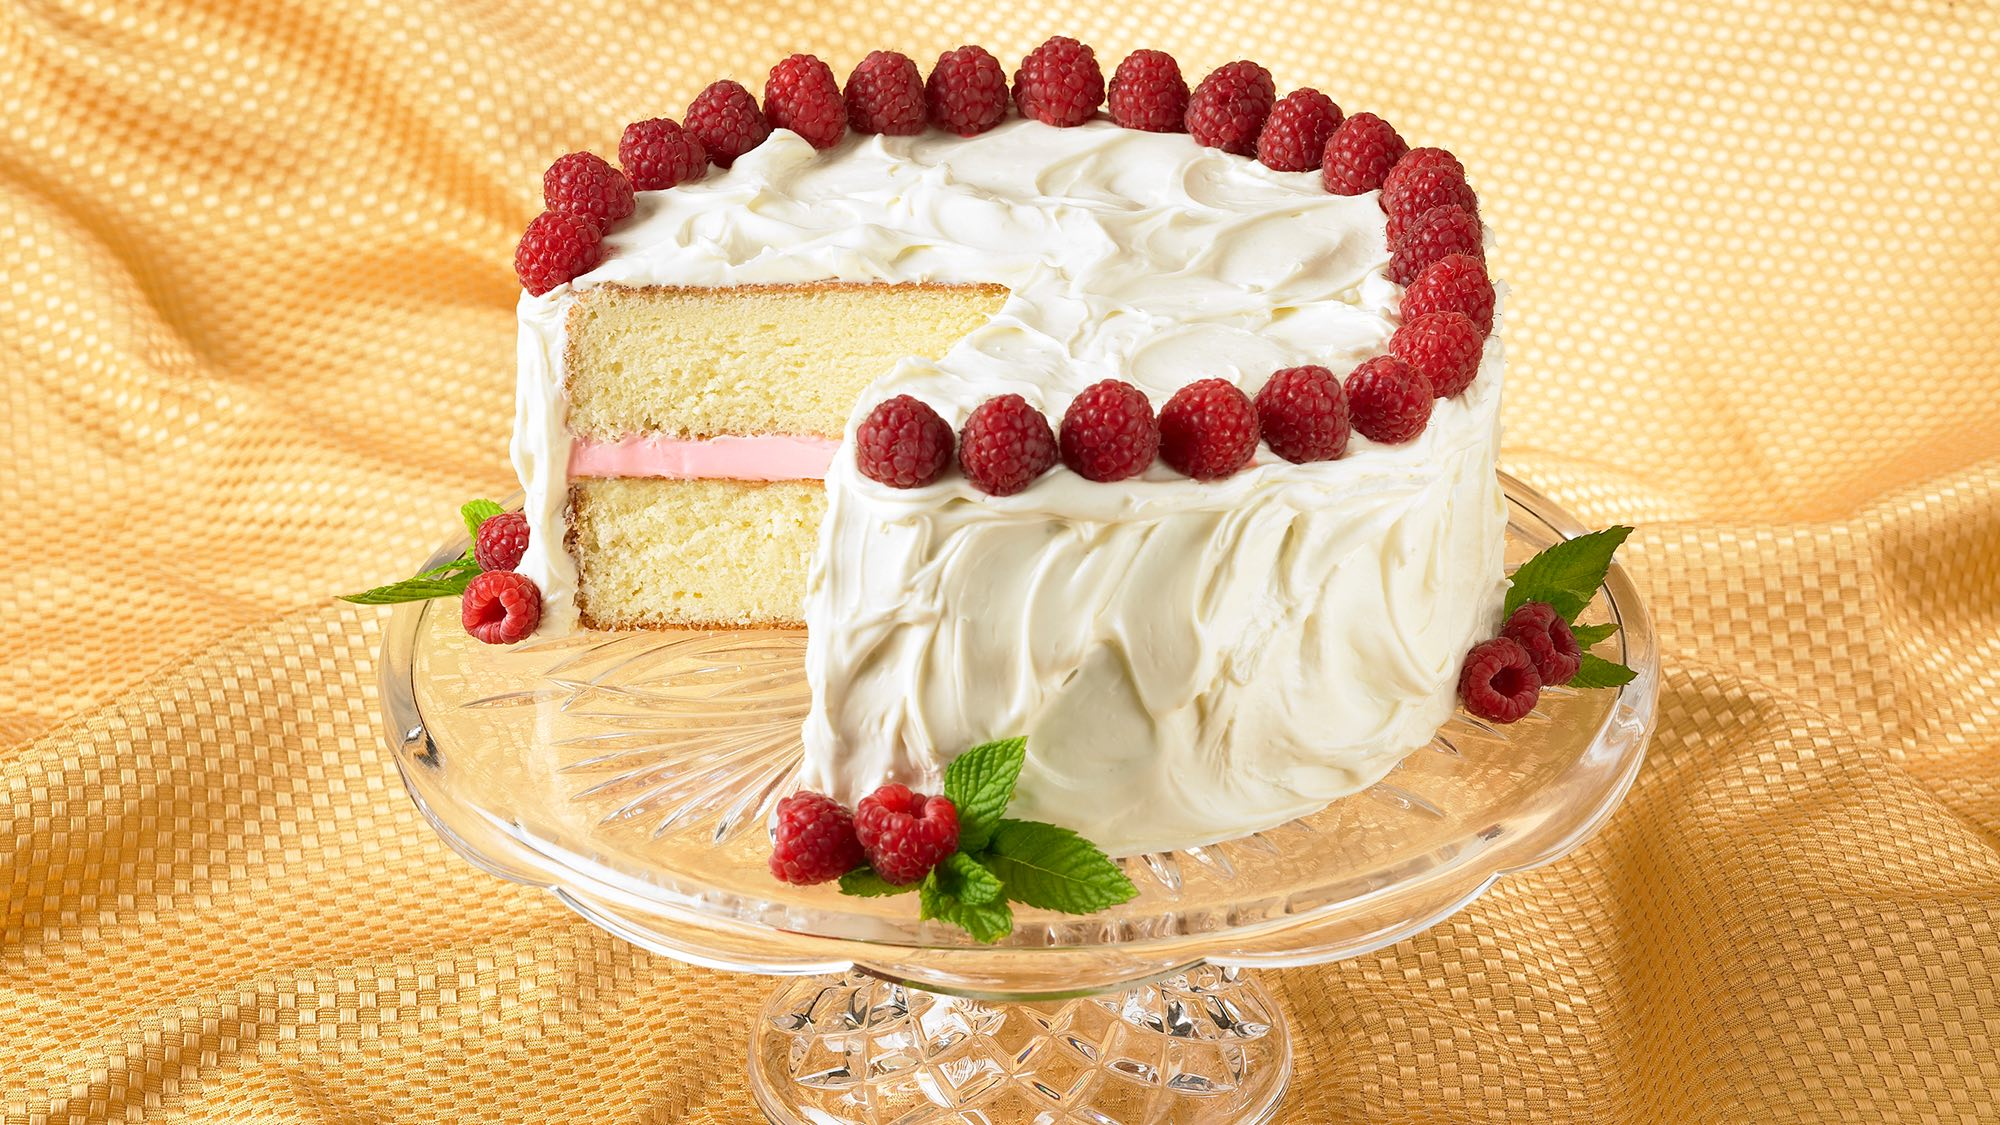 raspberry-white-chocolate-cake.jpg